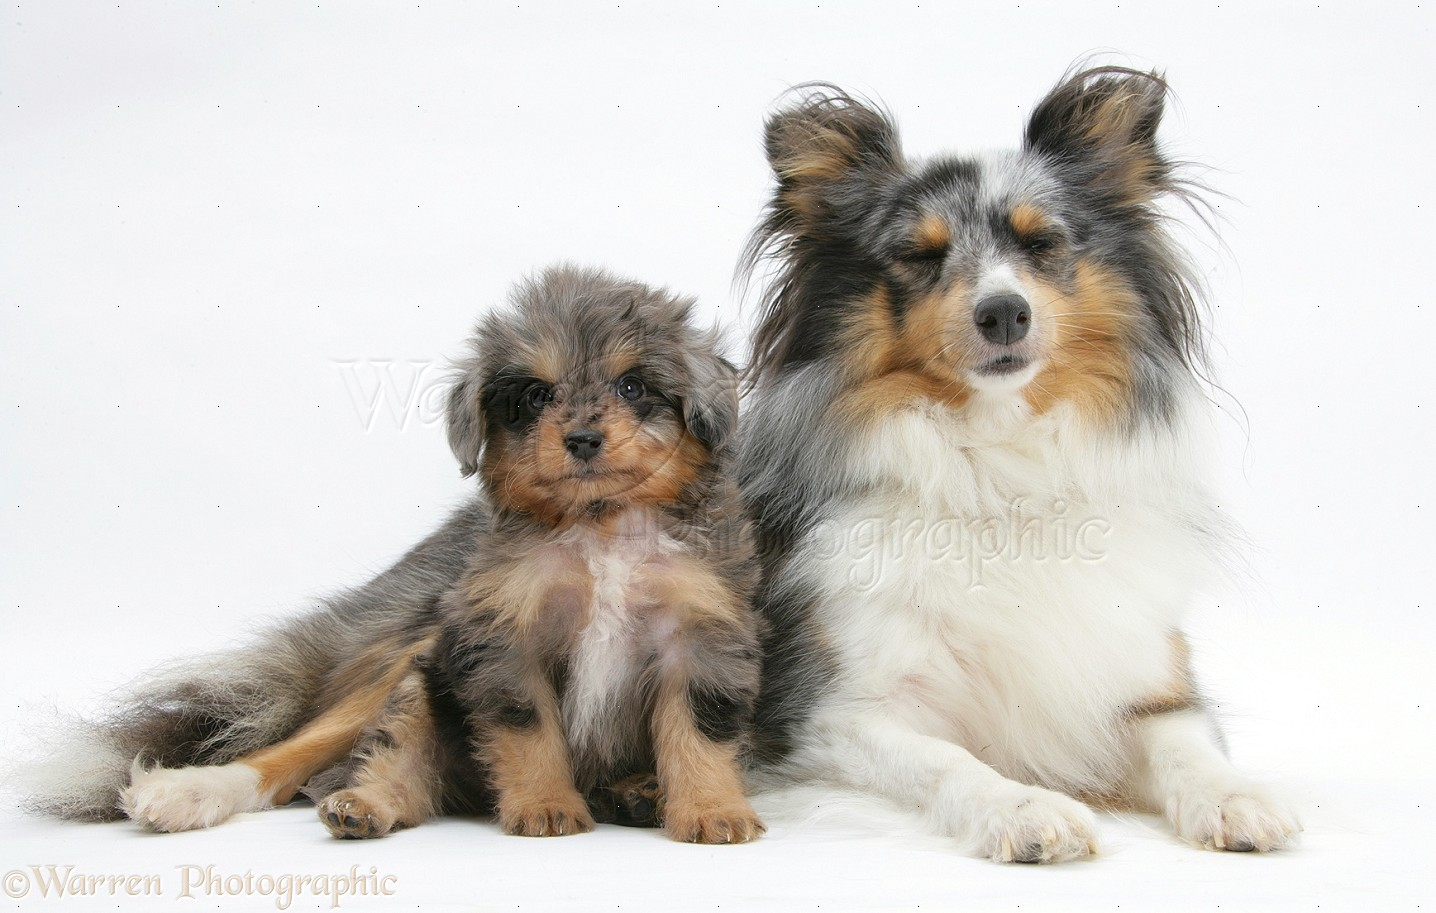 Dogs Sheltie And Sheltie X Poodle Pup Photo Wp20358